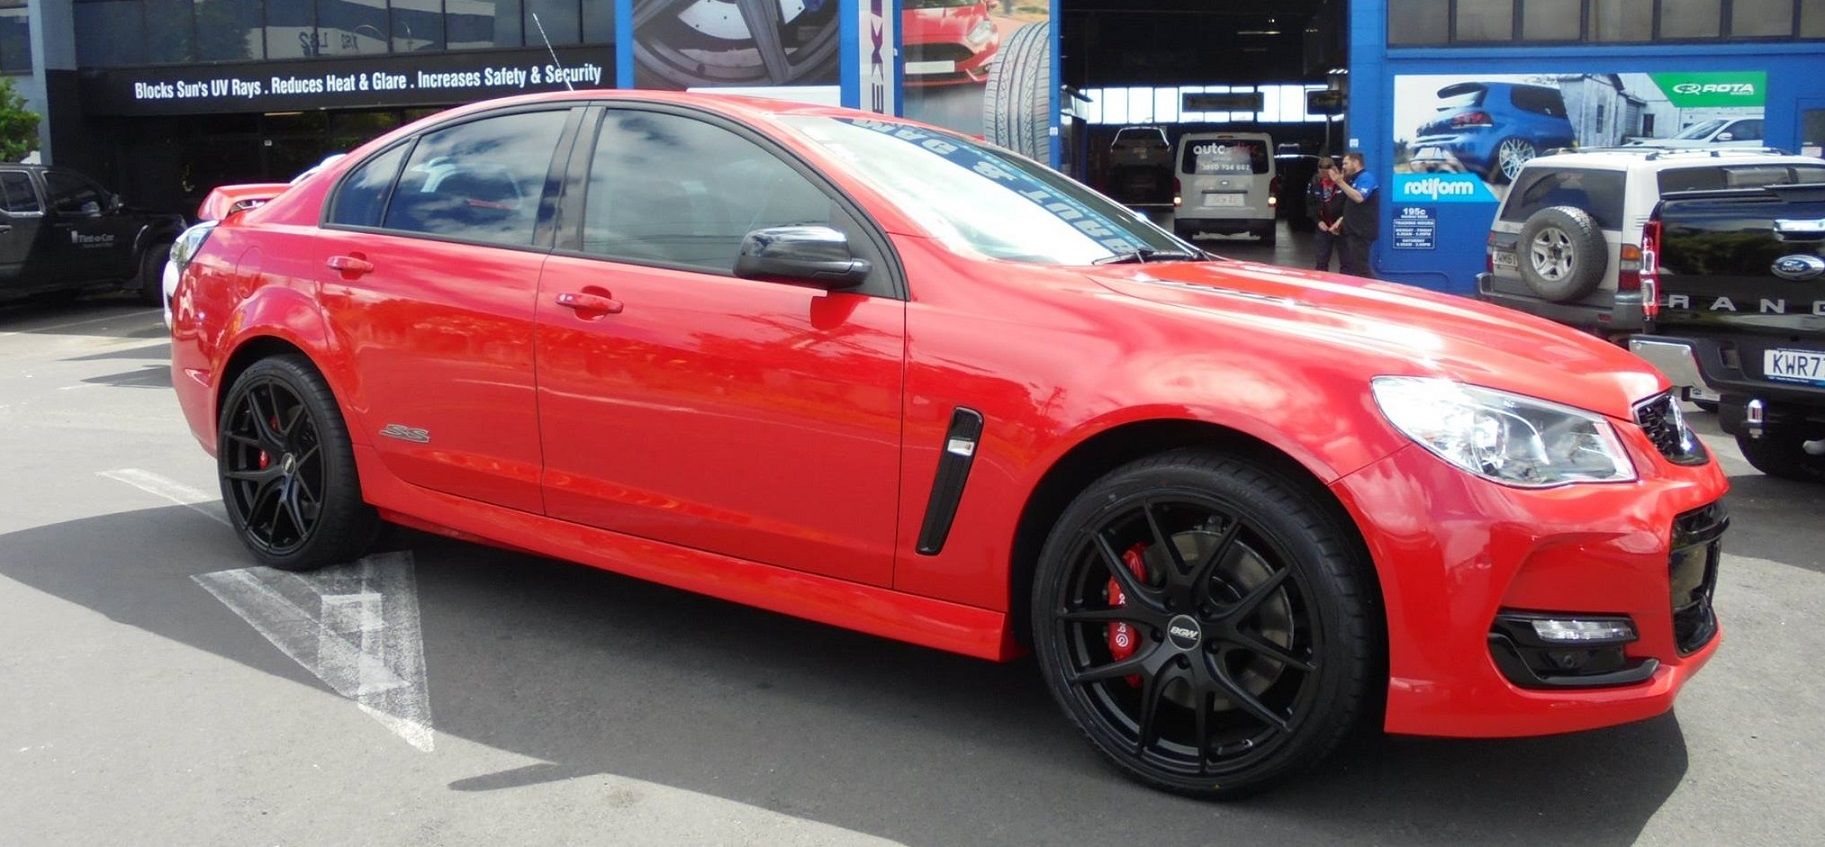 Holden Commodore on BGW Spiker